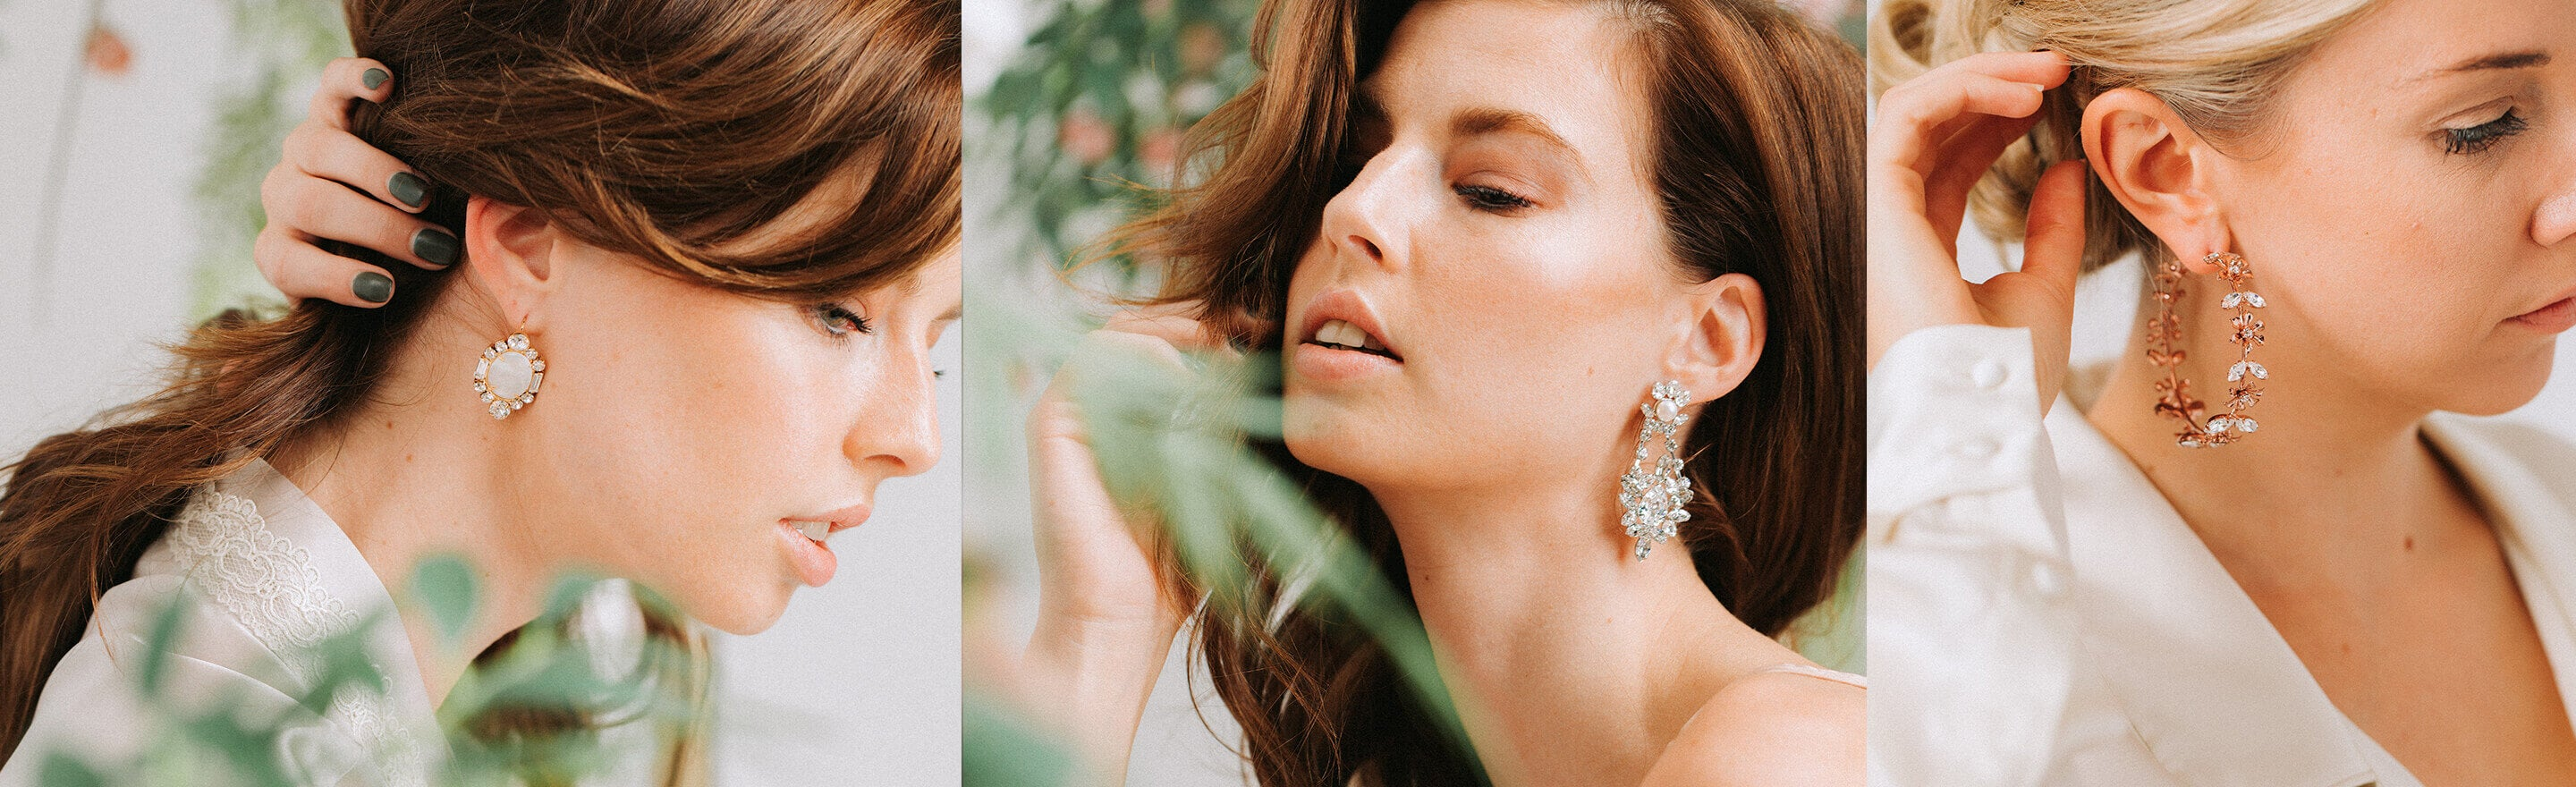 Wholesale Earrings - best sellers